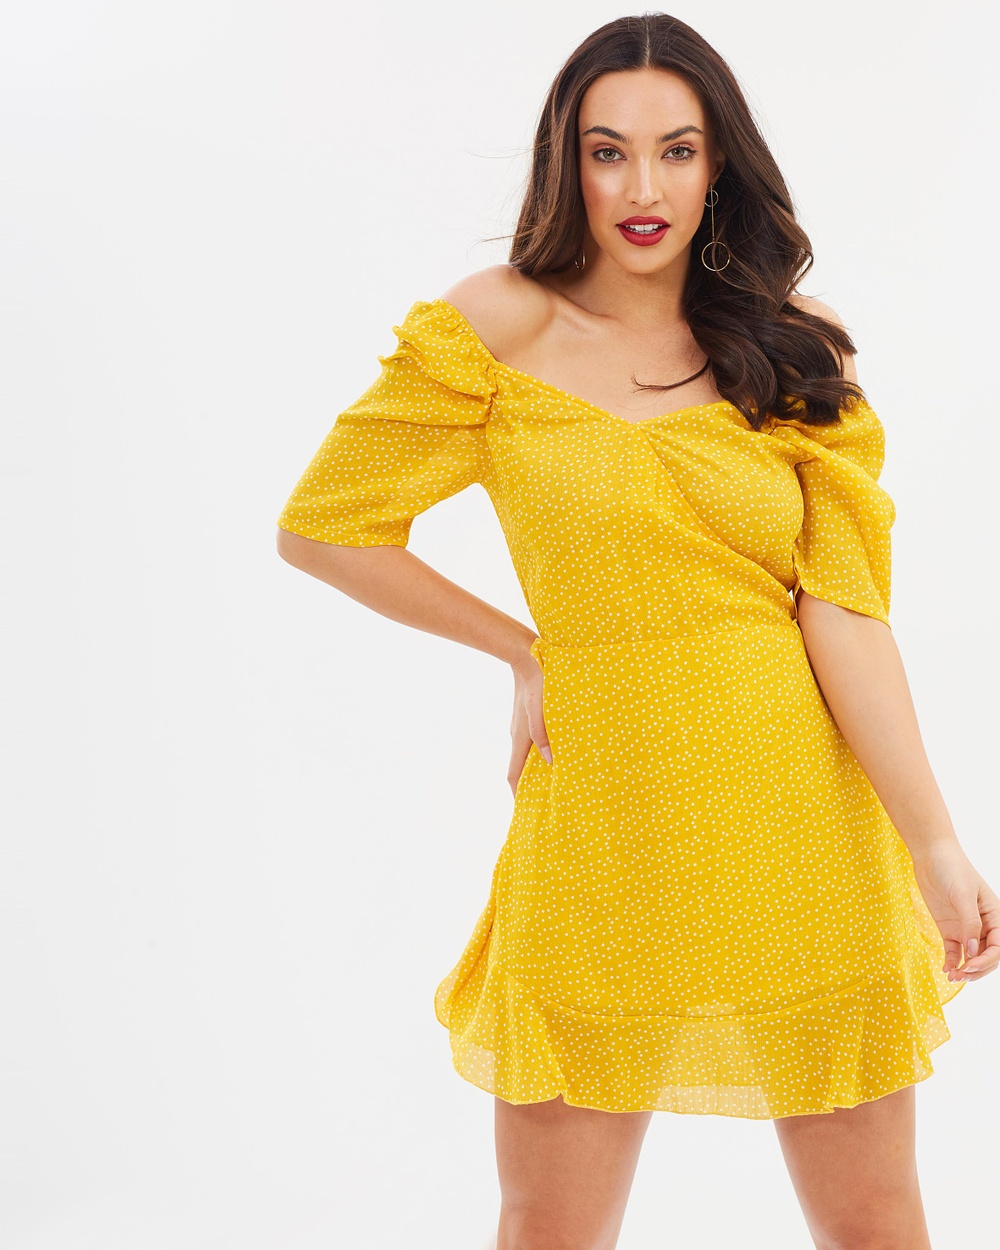 Missguided Chiffon Polka Dot Off The Shoulder Mini Dress Dresses Yellow Chiffon Polka Dot Off The Shoulder Mini Dress